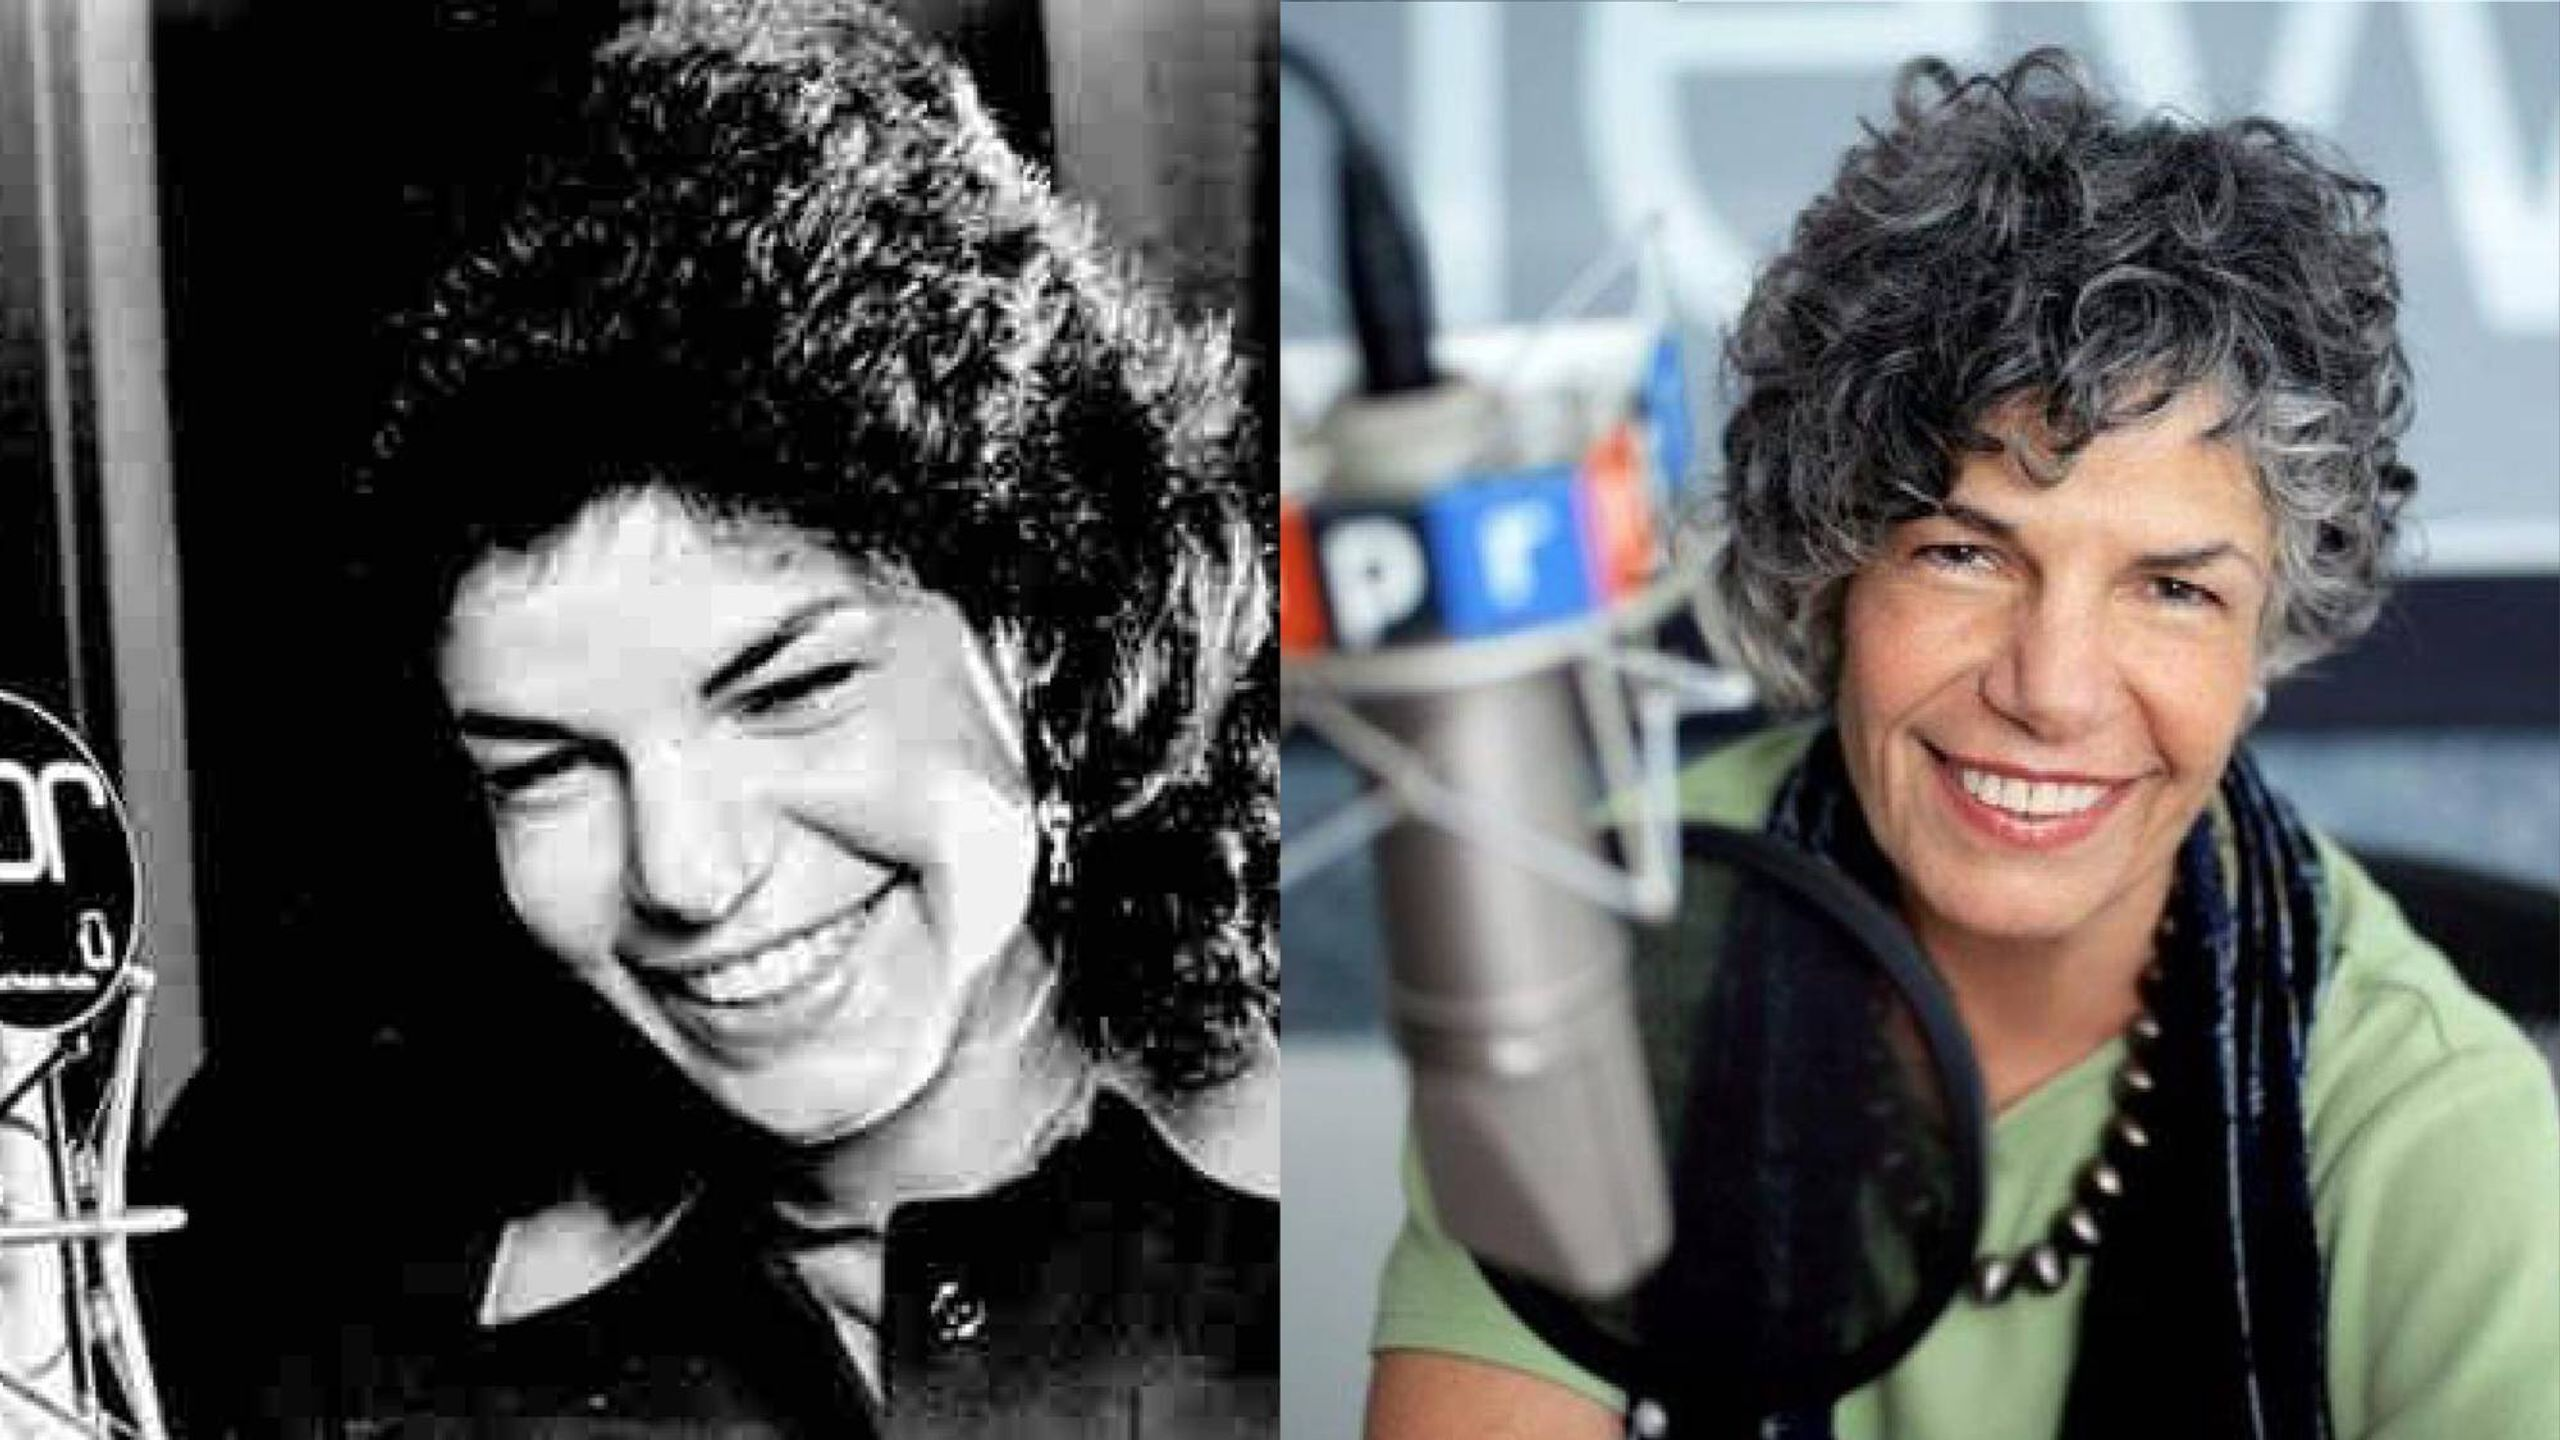 Then and now, photo of another founding woman journalist from years ago and another modern photo.